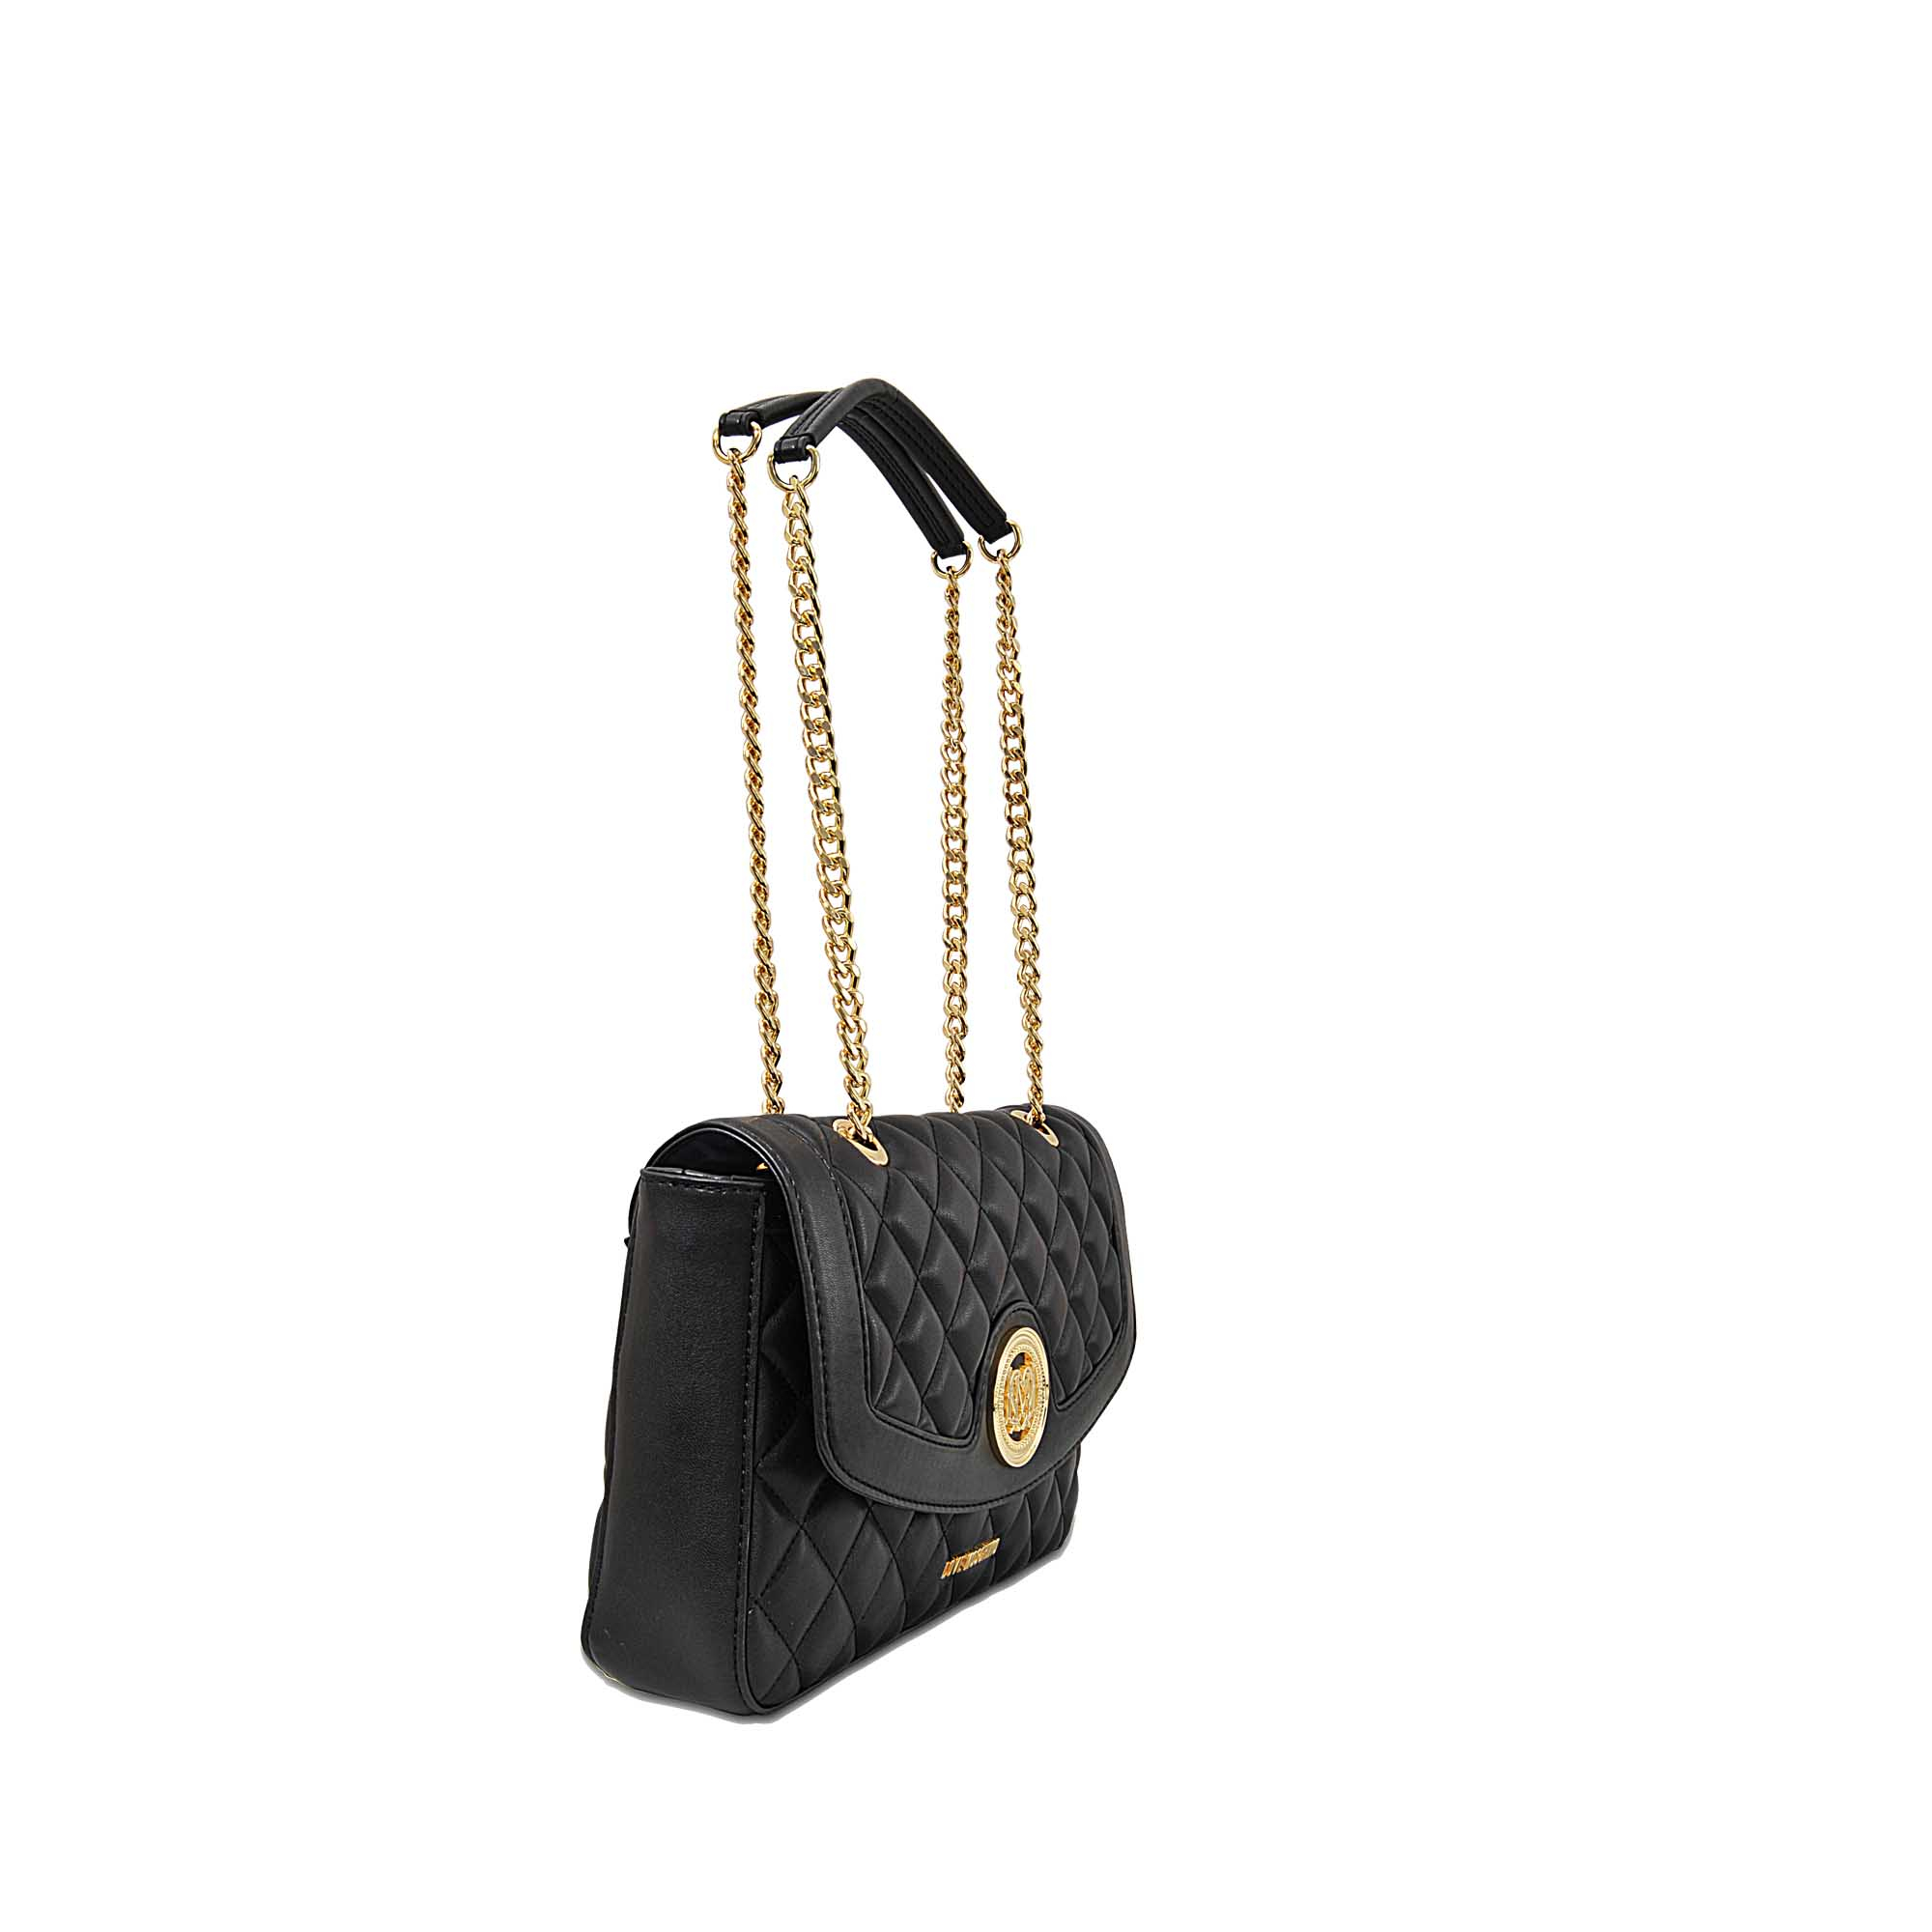 def54e78f4c Lyst Love Moschino Super Quilted Flap Bag In Black. Bags Women Love Moschino.  Love Moschino Grey Faux Quilted Leather Chain Flap Bag Nextprev Prevnext